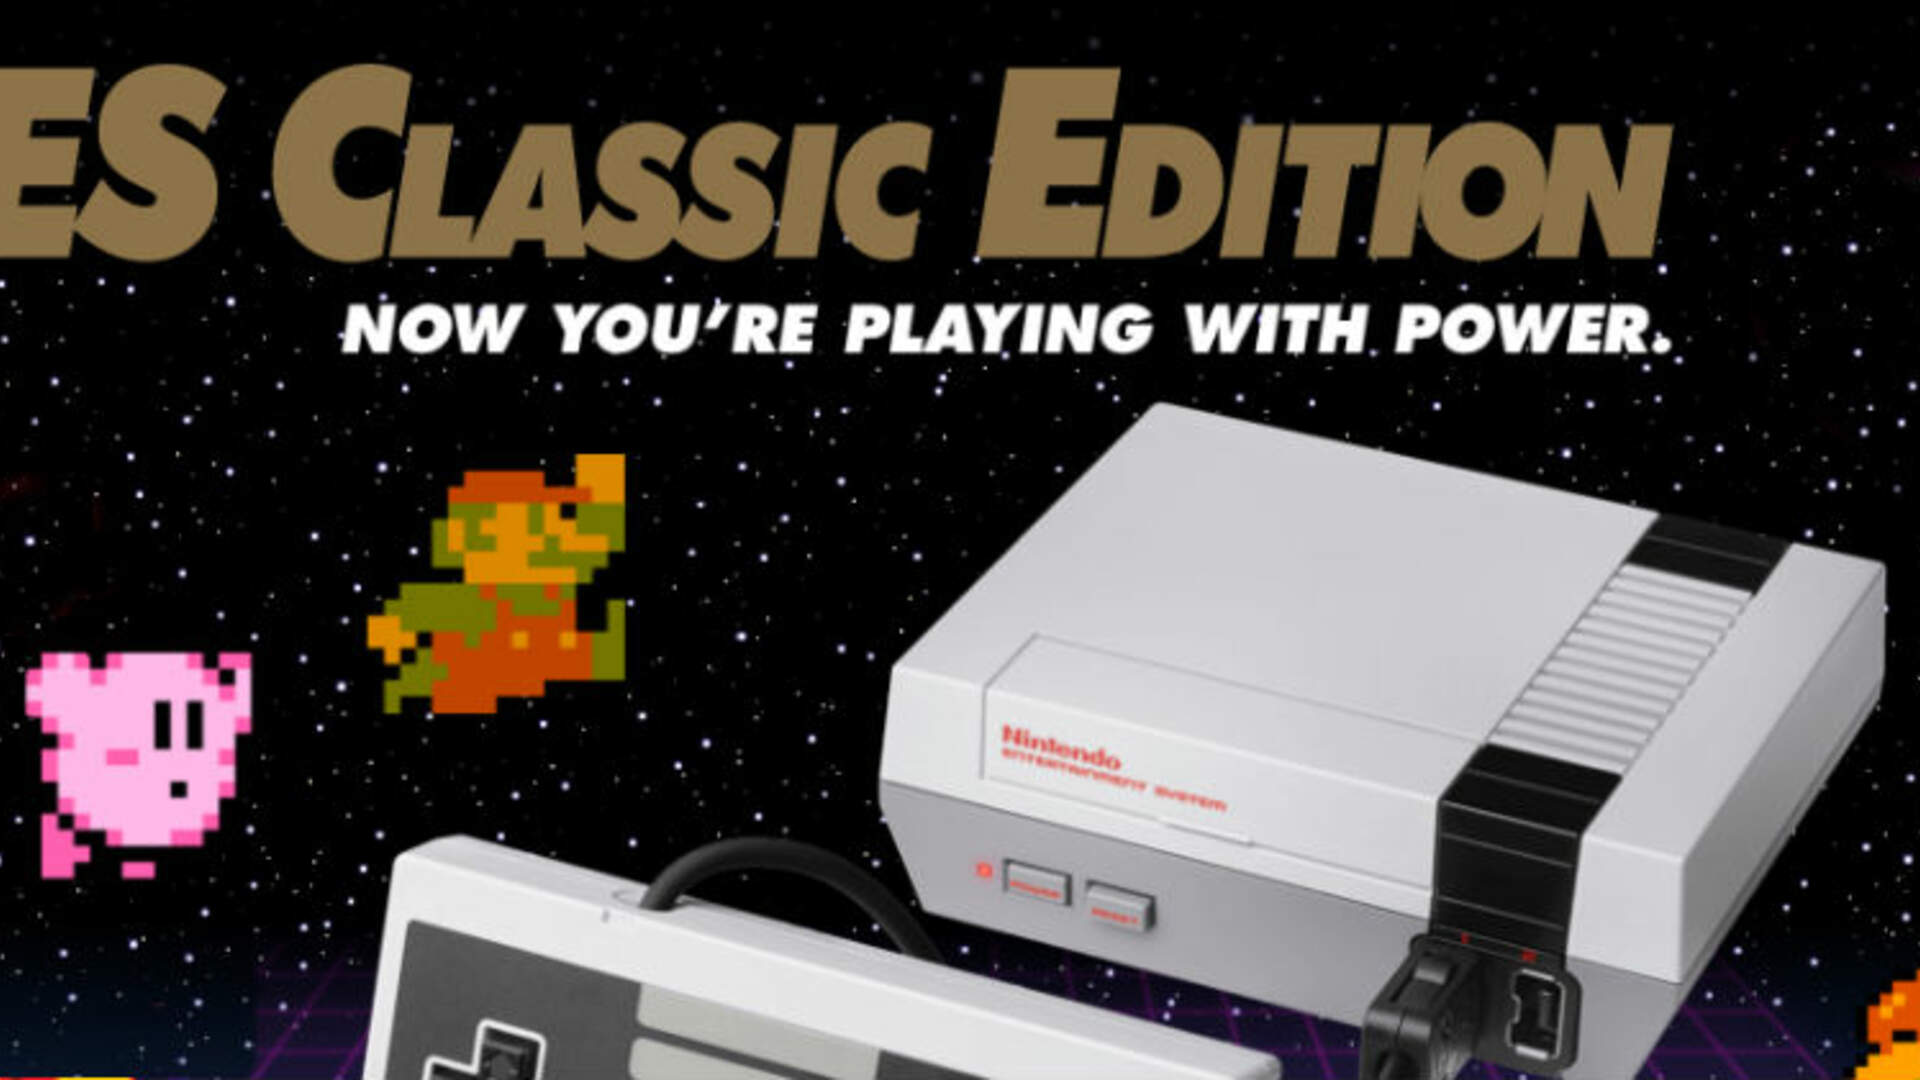 NES Classic Edition Guide: Details, Game Cheats, Tips, and More